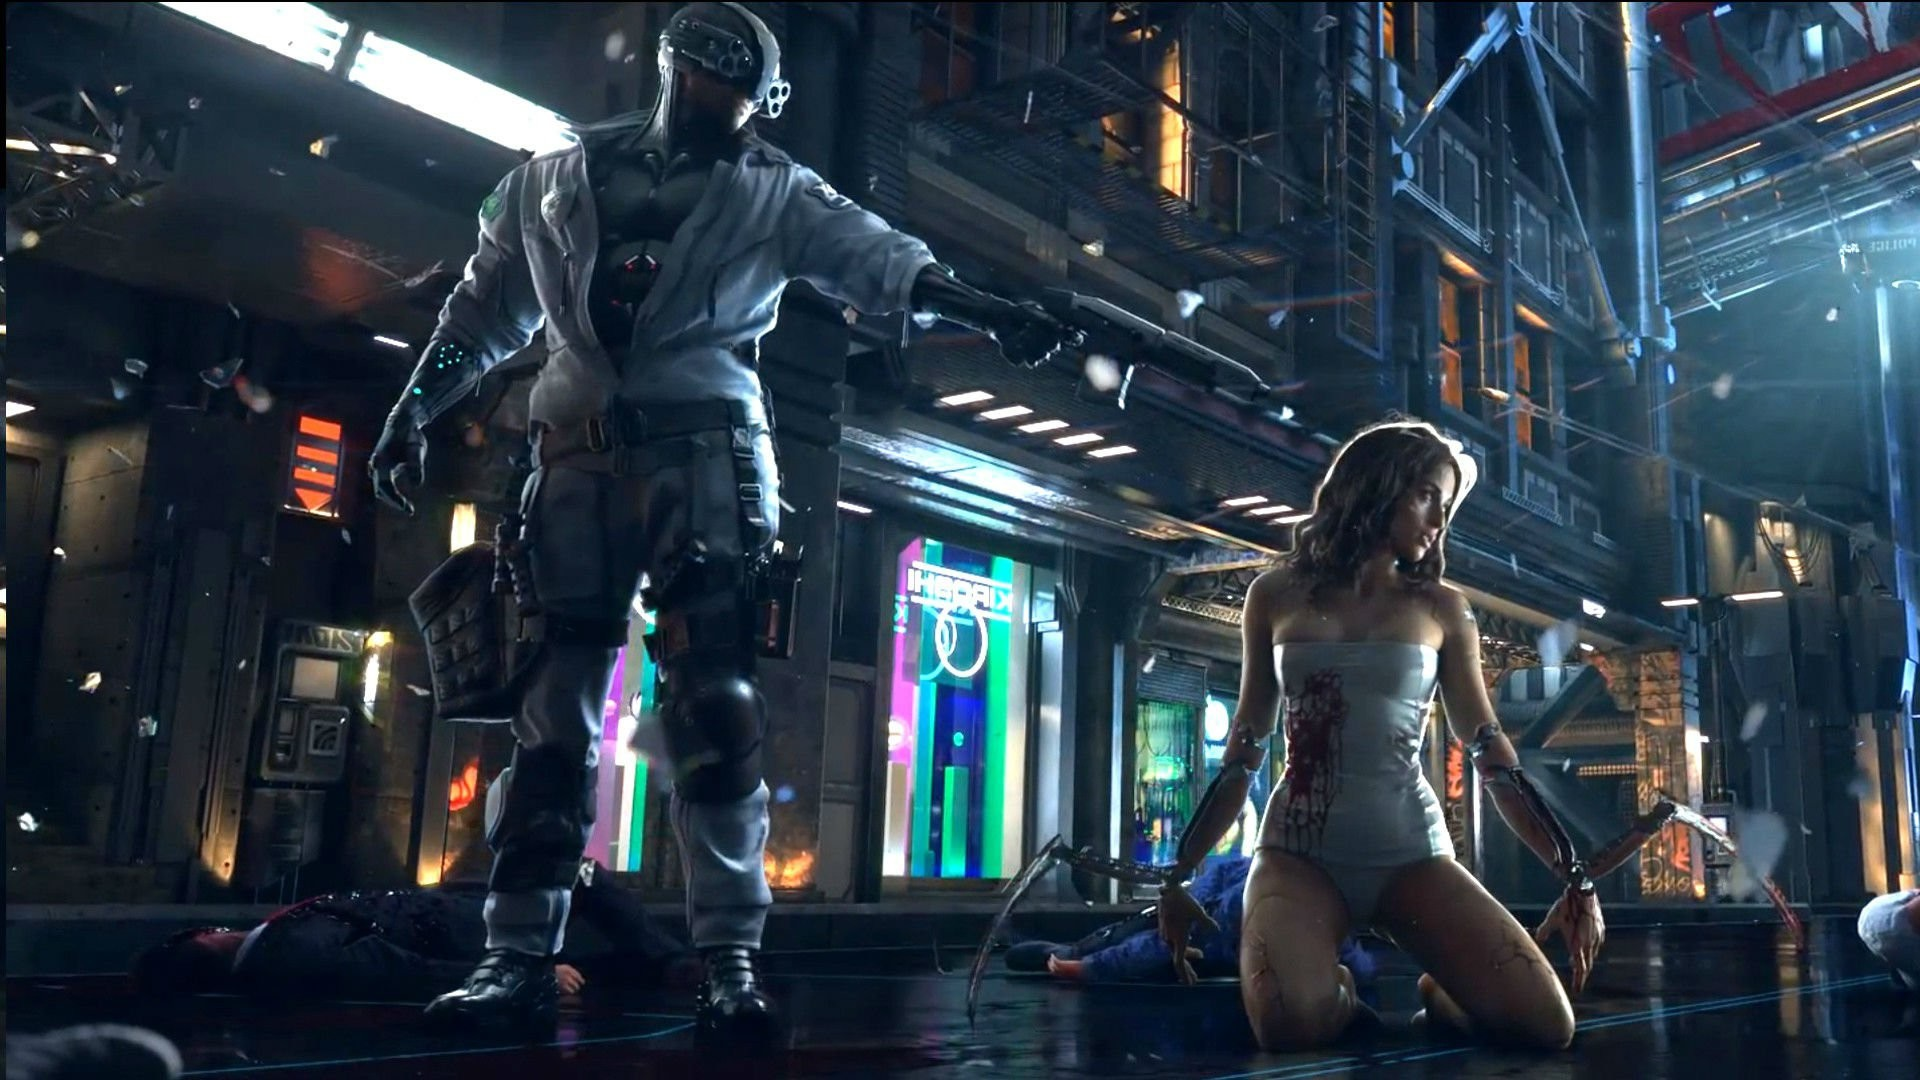 Cyberpunk 2077 Game's Map is Smaller than The Witcher 3